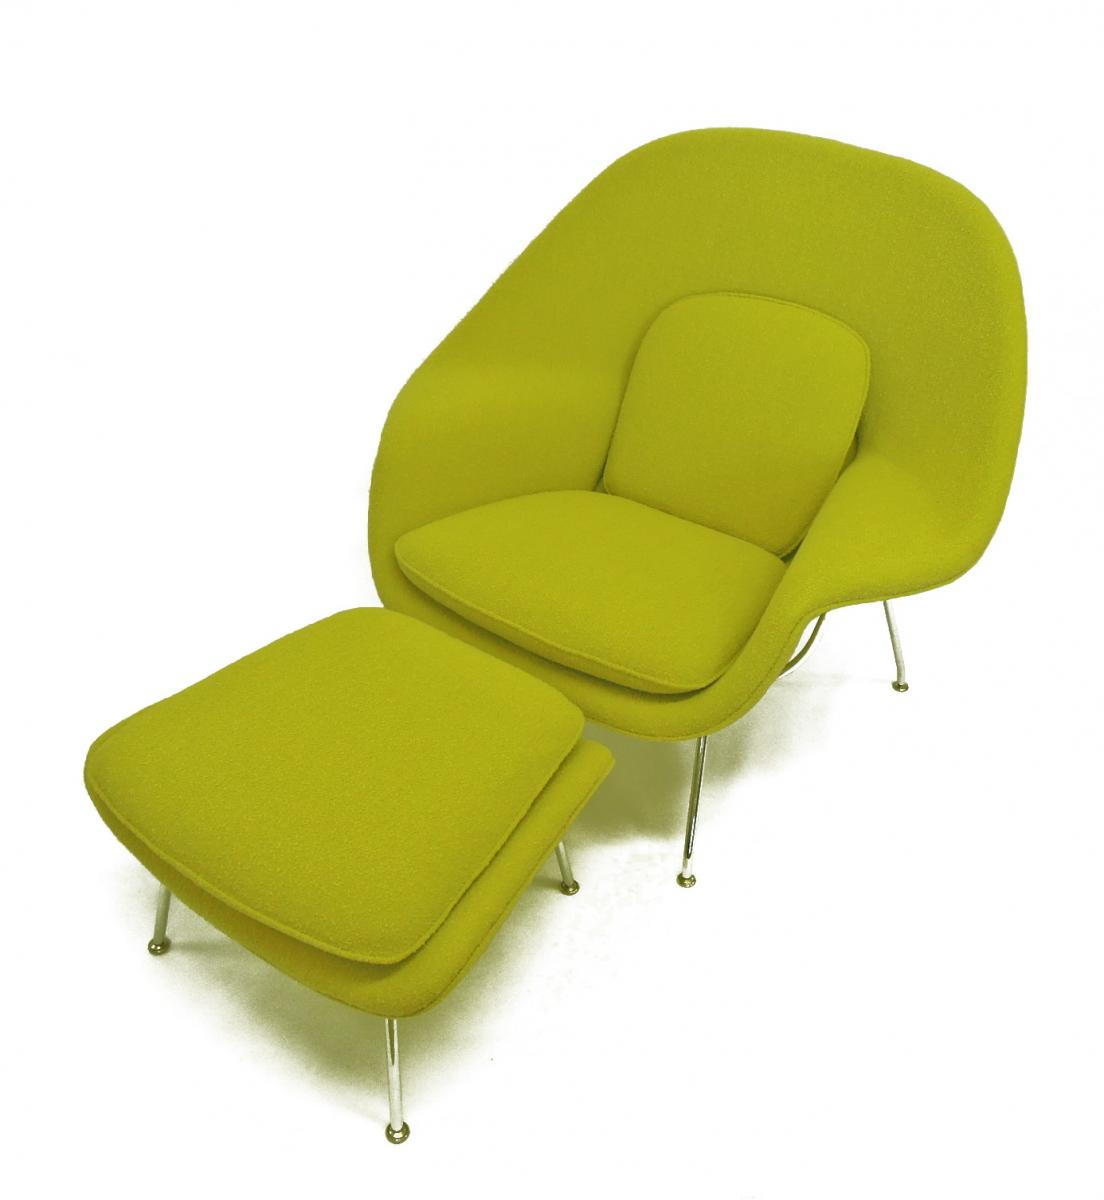 Saarinen Womb Chair MOD